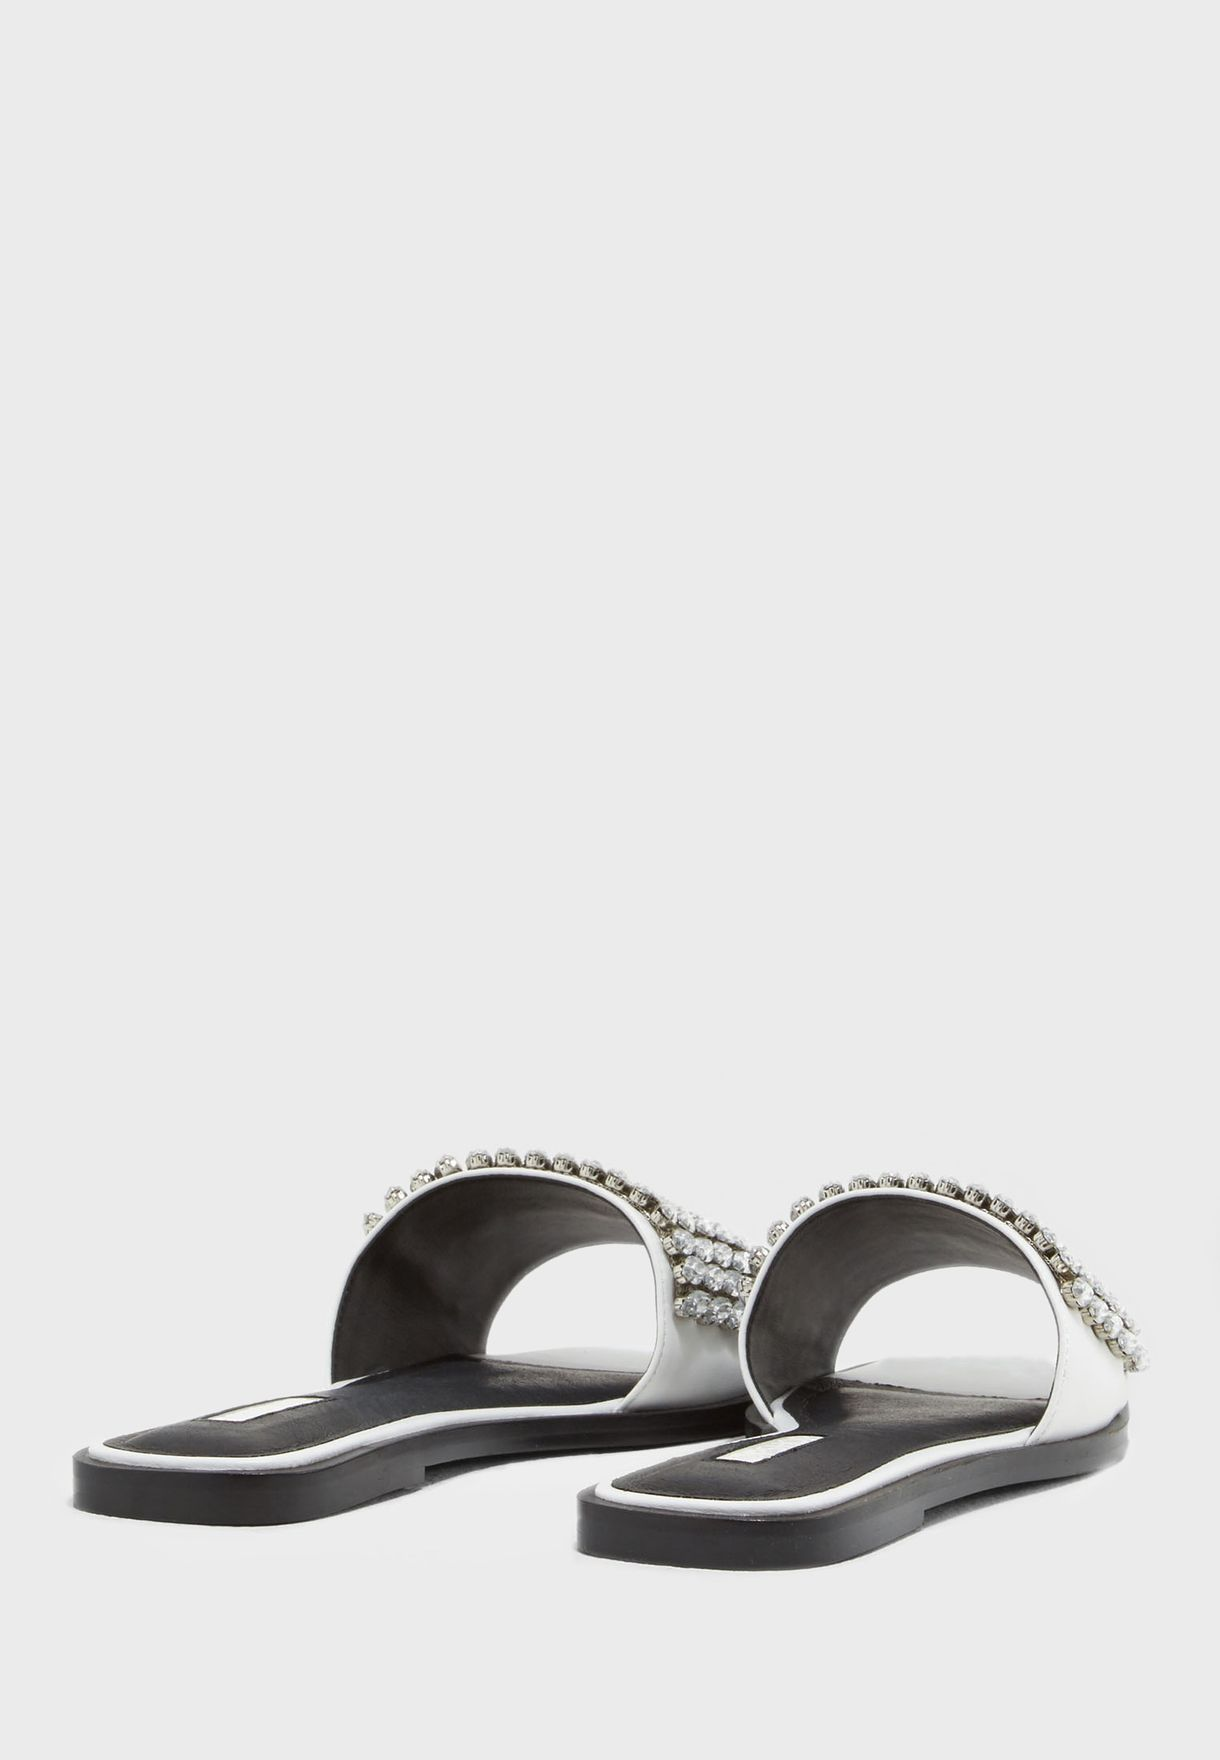 e9a0772f0685 Shop Topshop white Fancy Embellished Sliders 32F06NWHT for Women in ...